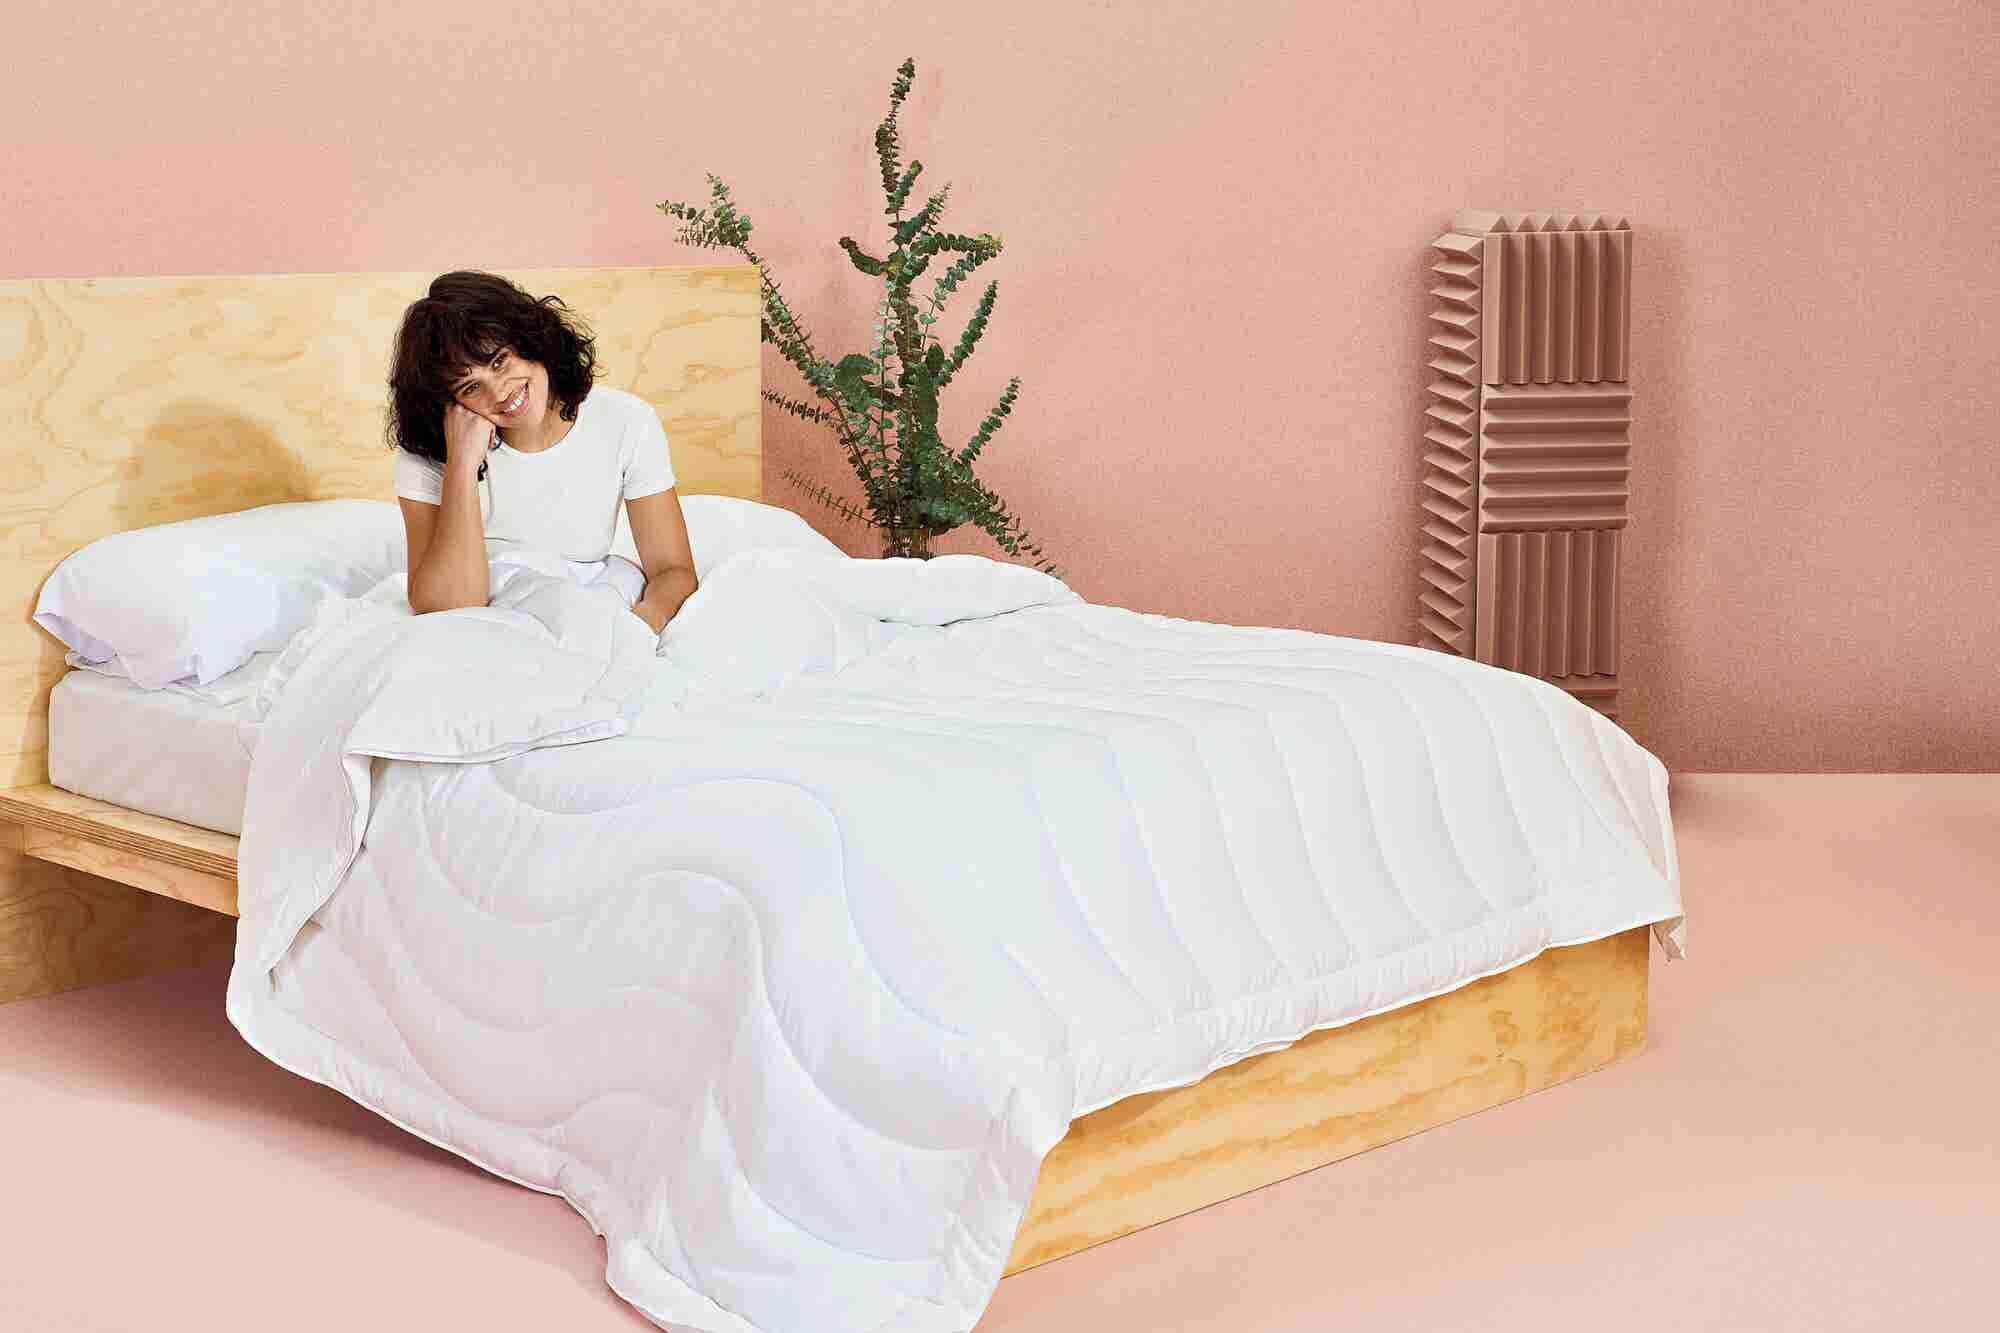 Why This Comforter Startup Had to Make Its Product Less Perfect